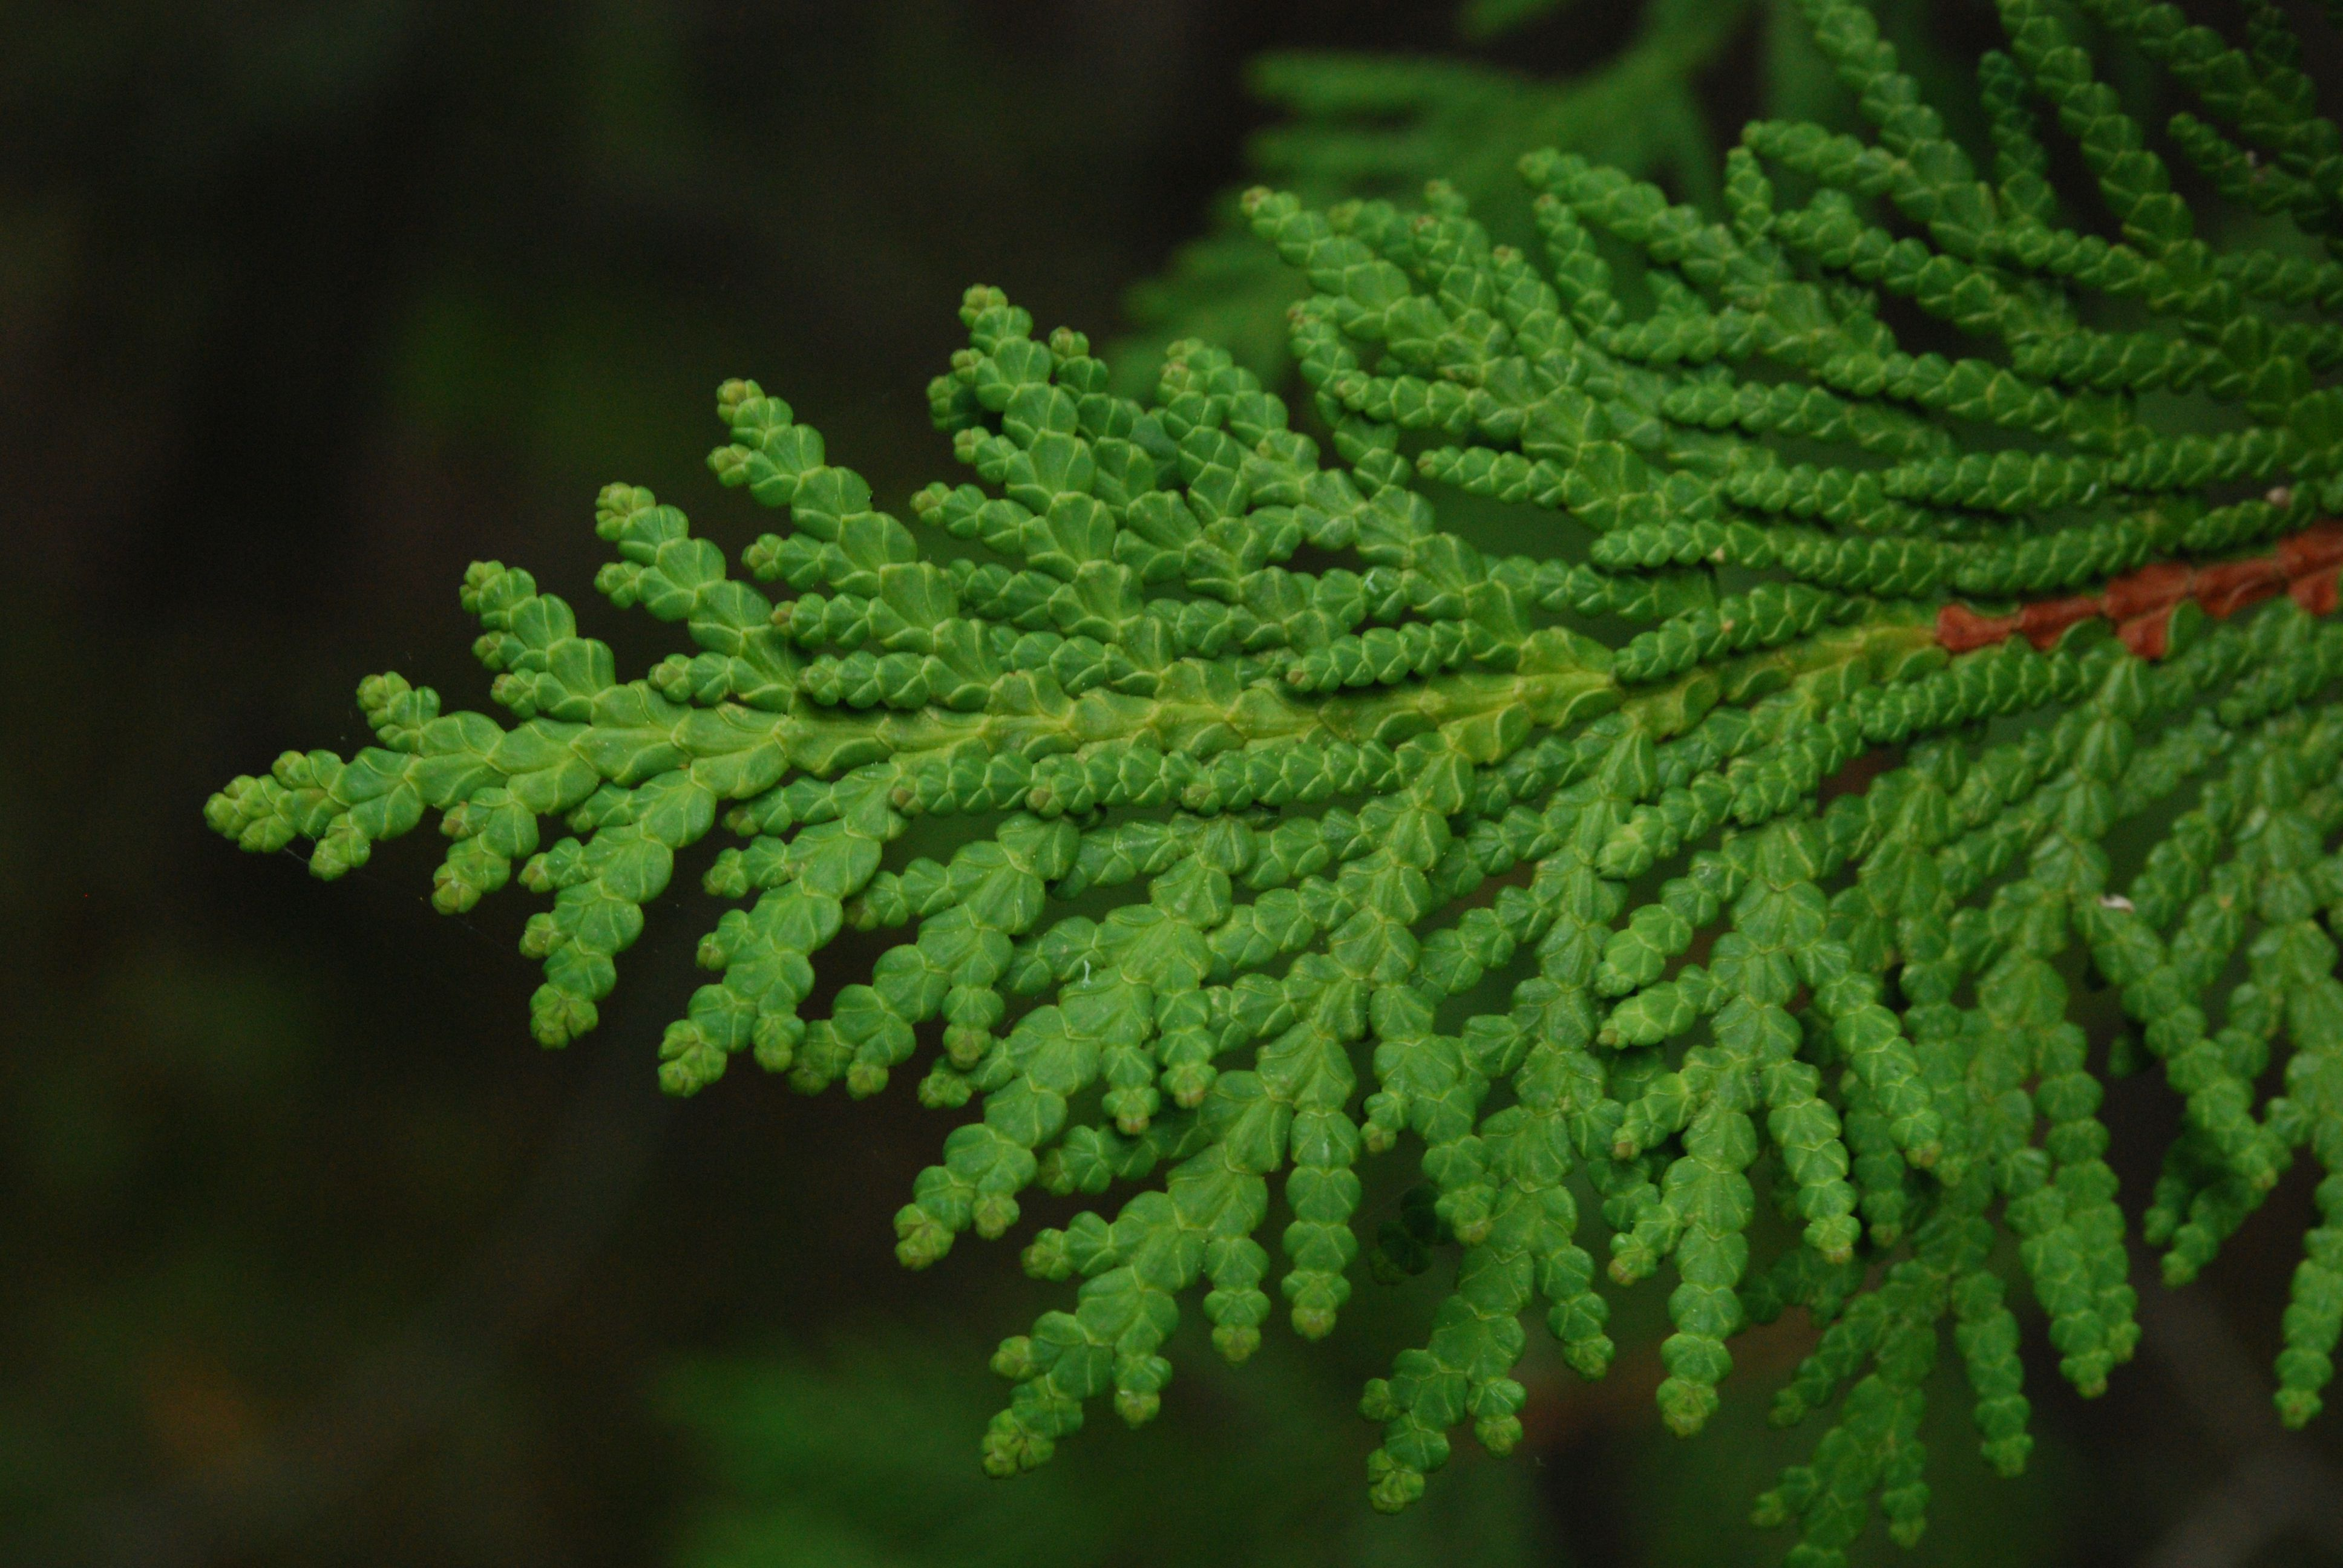 Cedars and junipers identifying north american trees